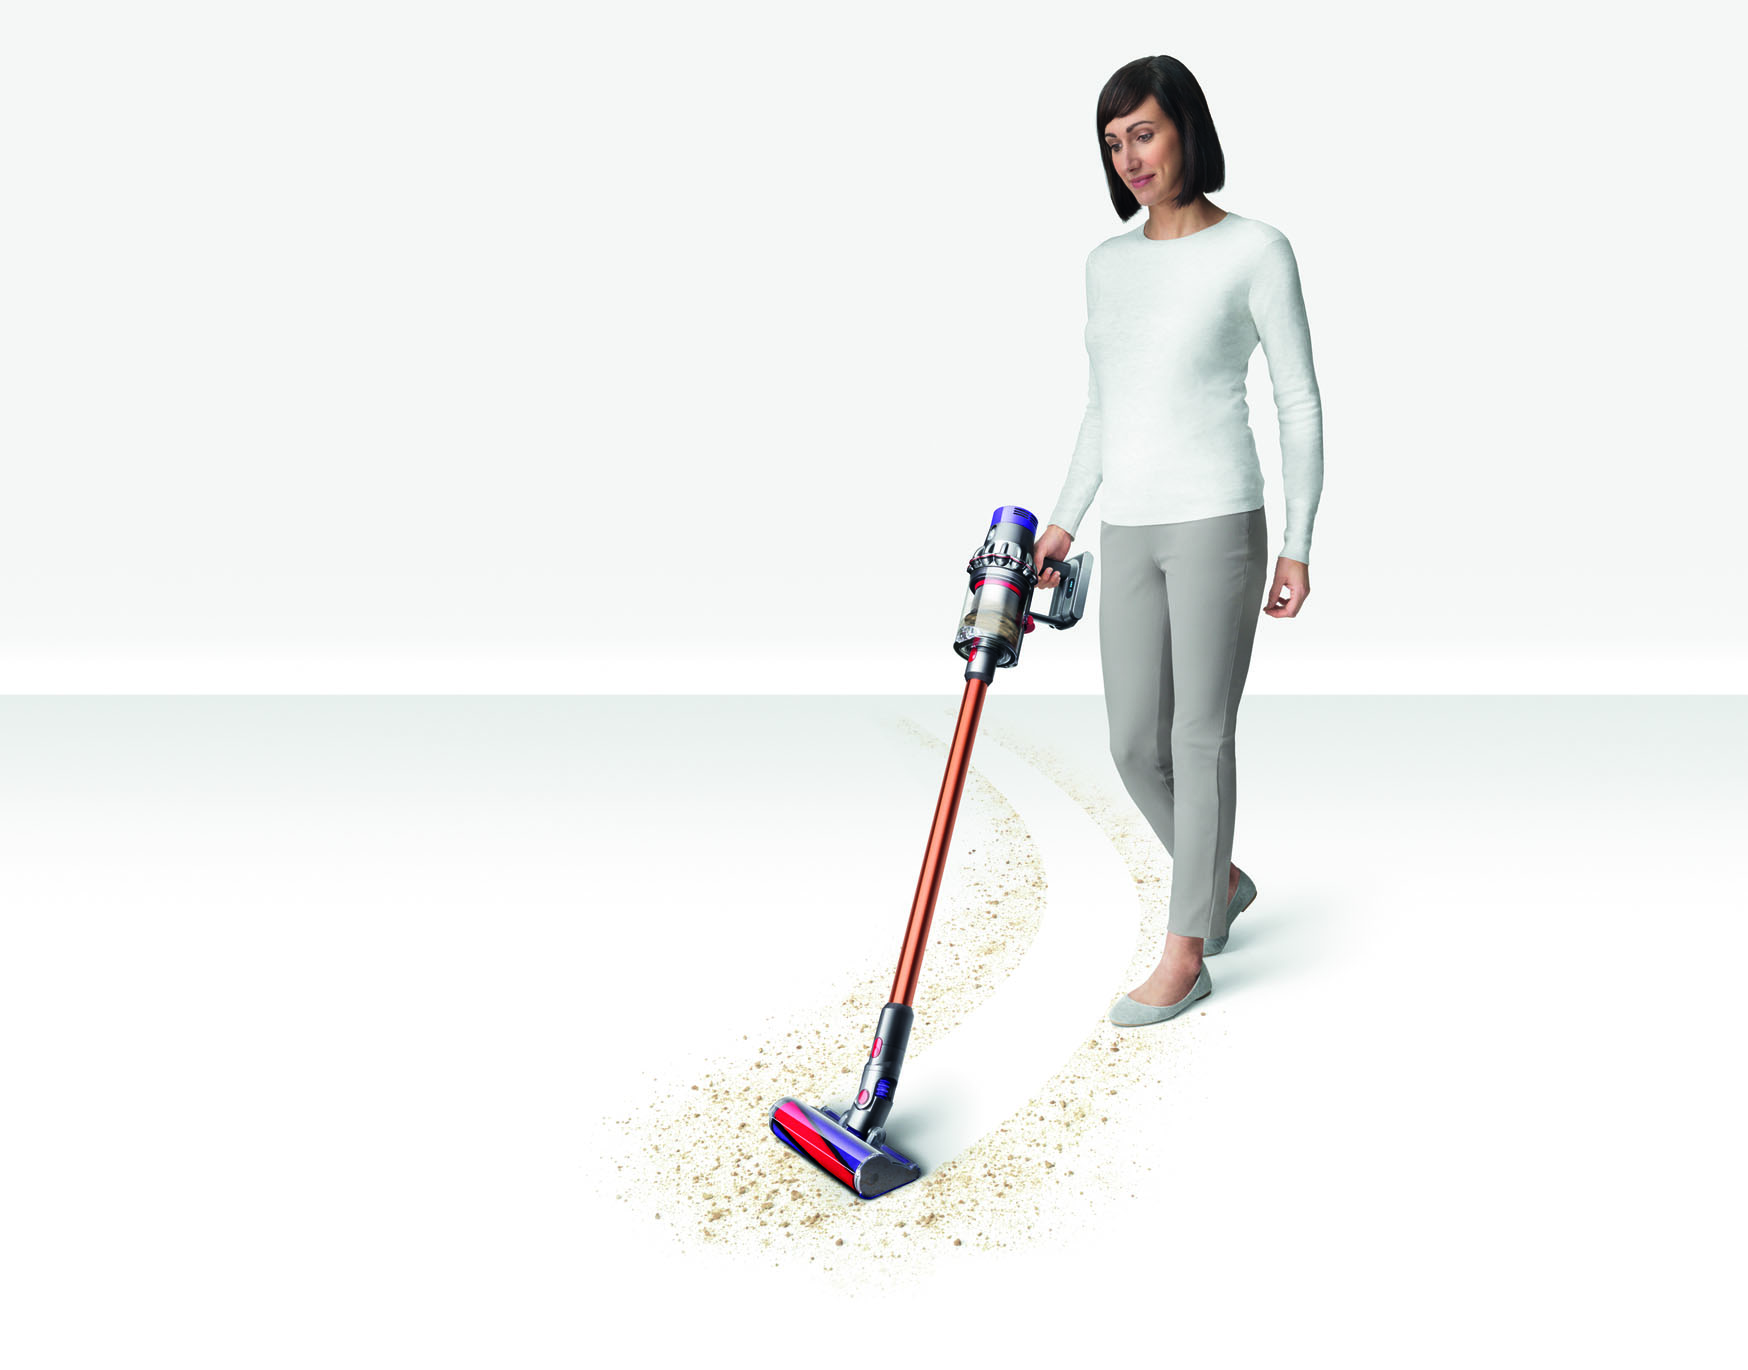 Dyson V8 Avis Dyson Cyclone V10 Review De Drempel Over Want